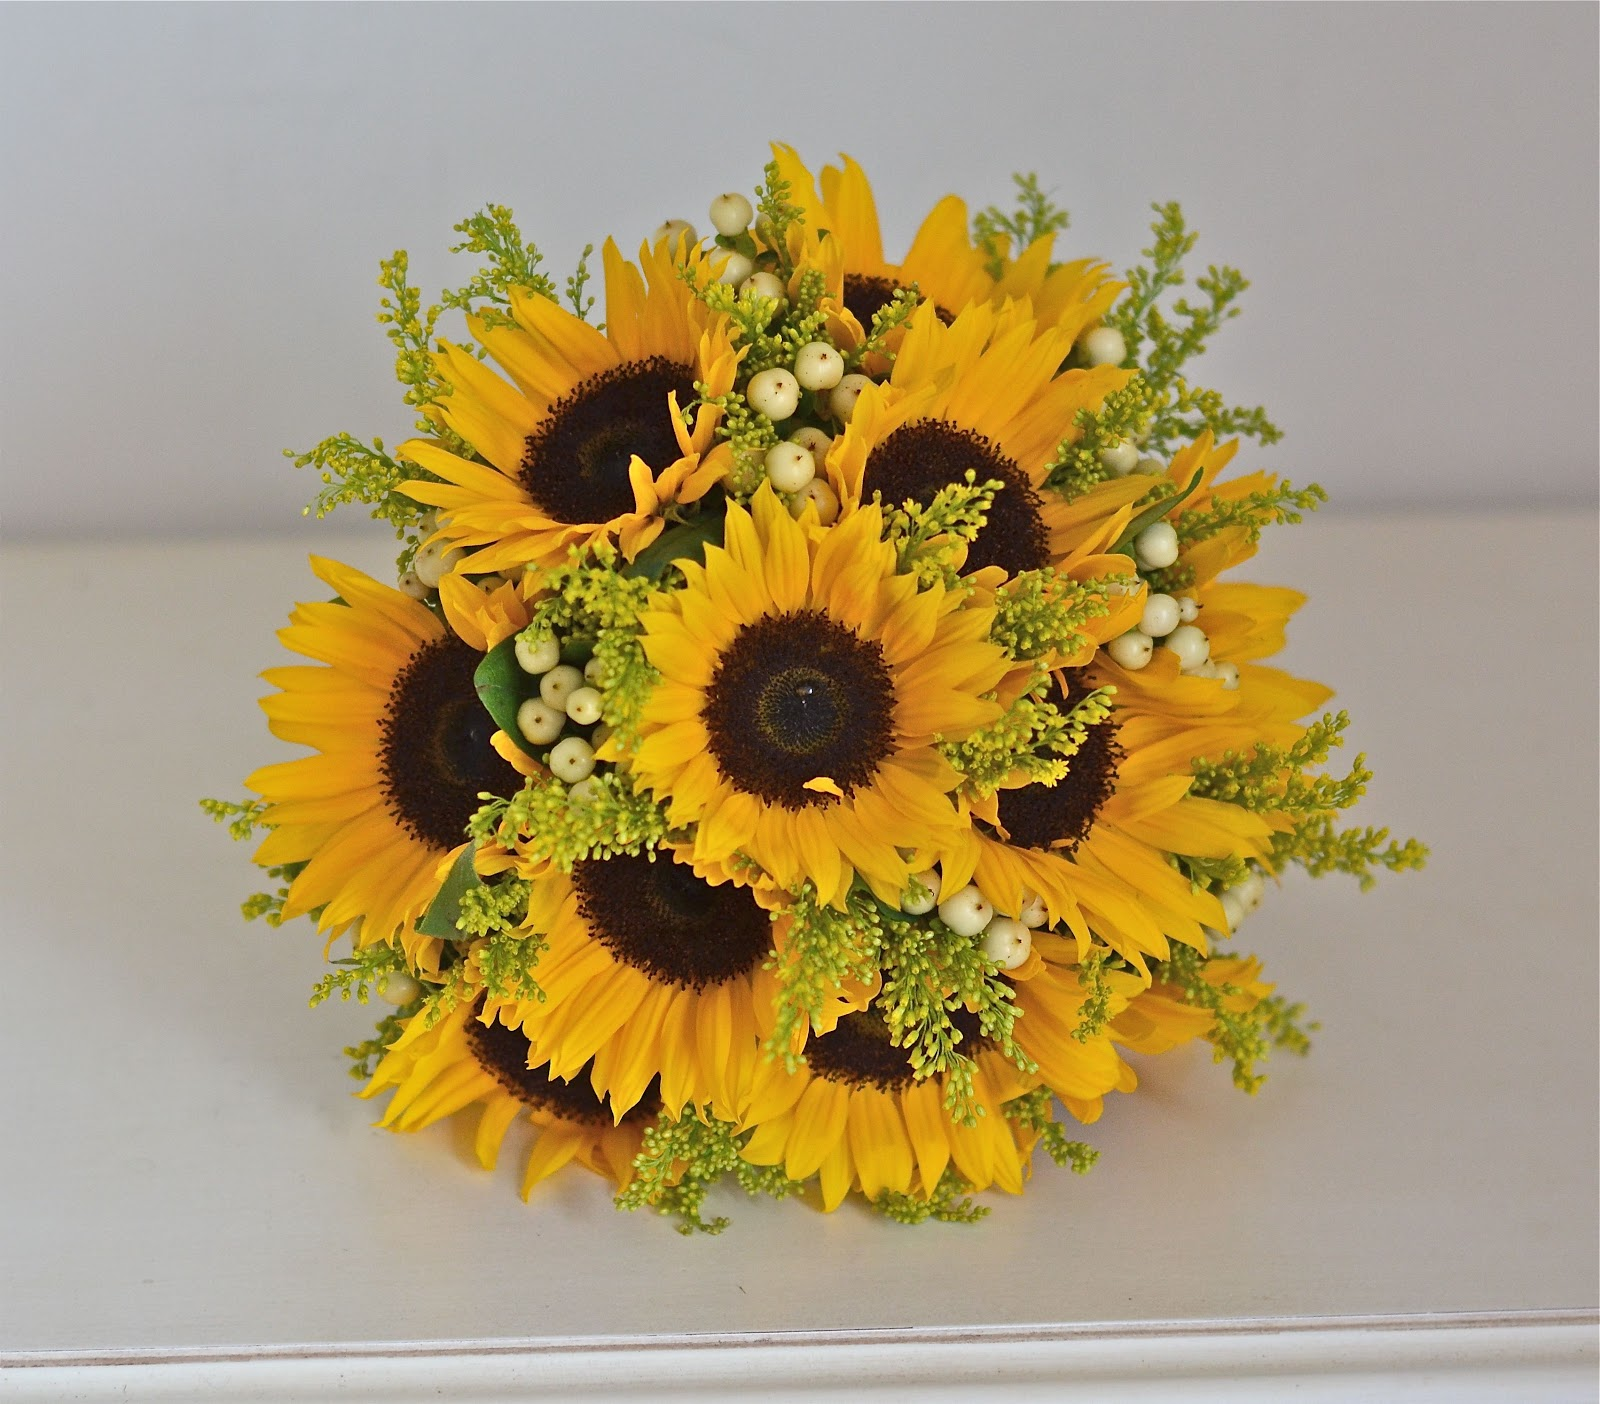 Bridesmaid Bouquets Sunflowers : Wedding flowers april